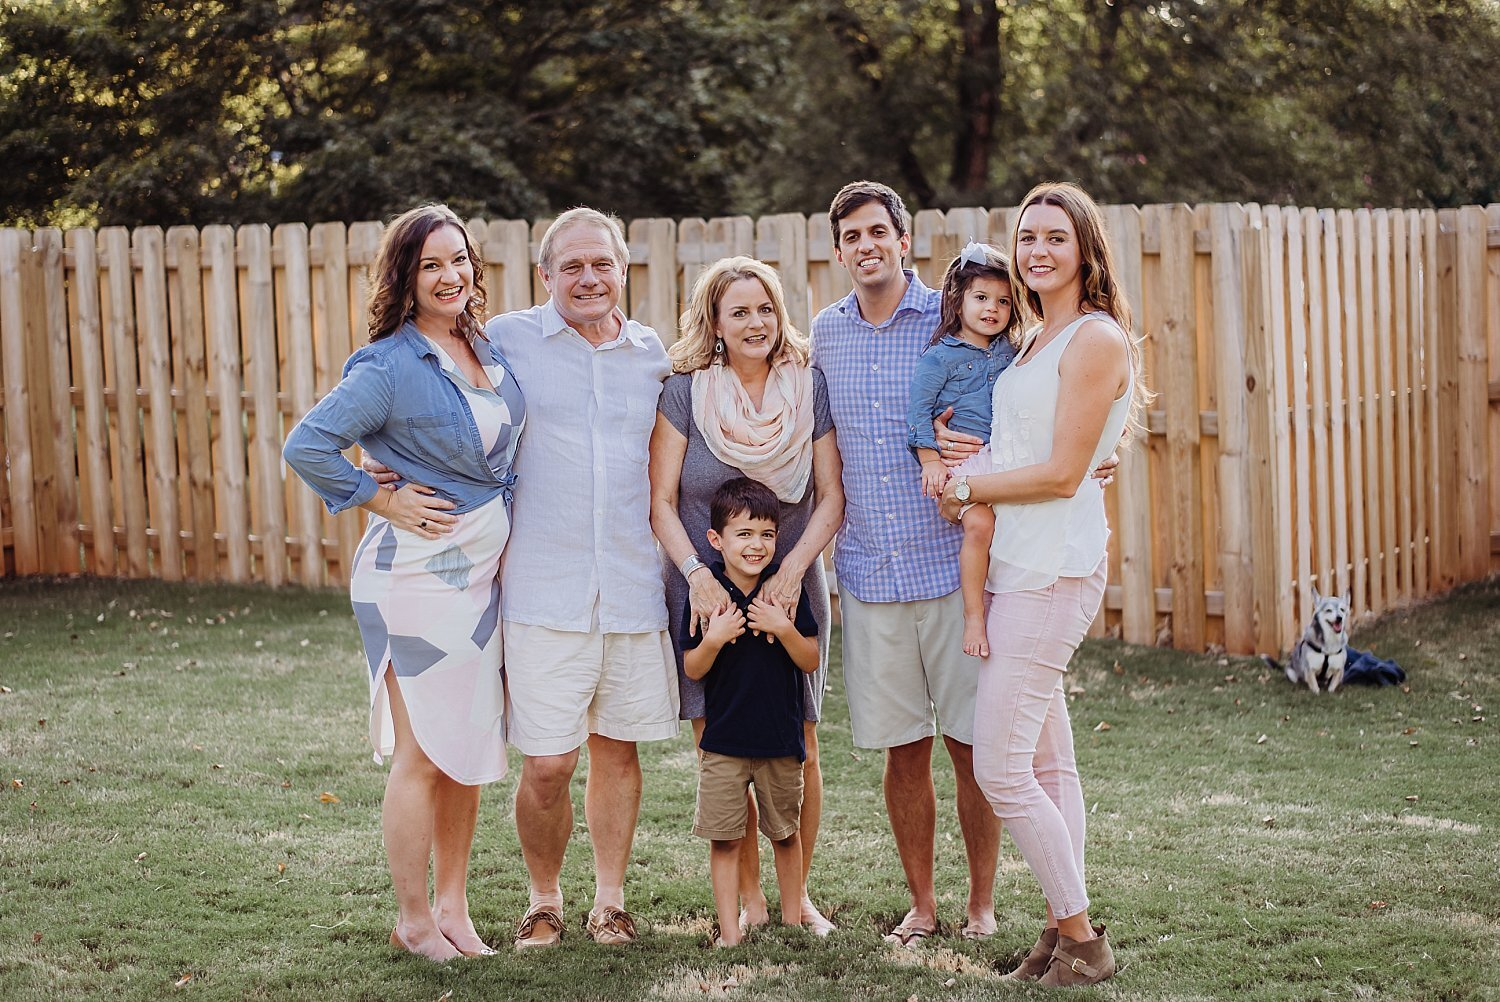 family photo in backyard with fence